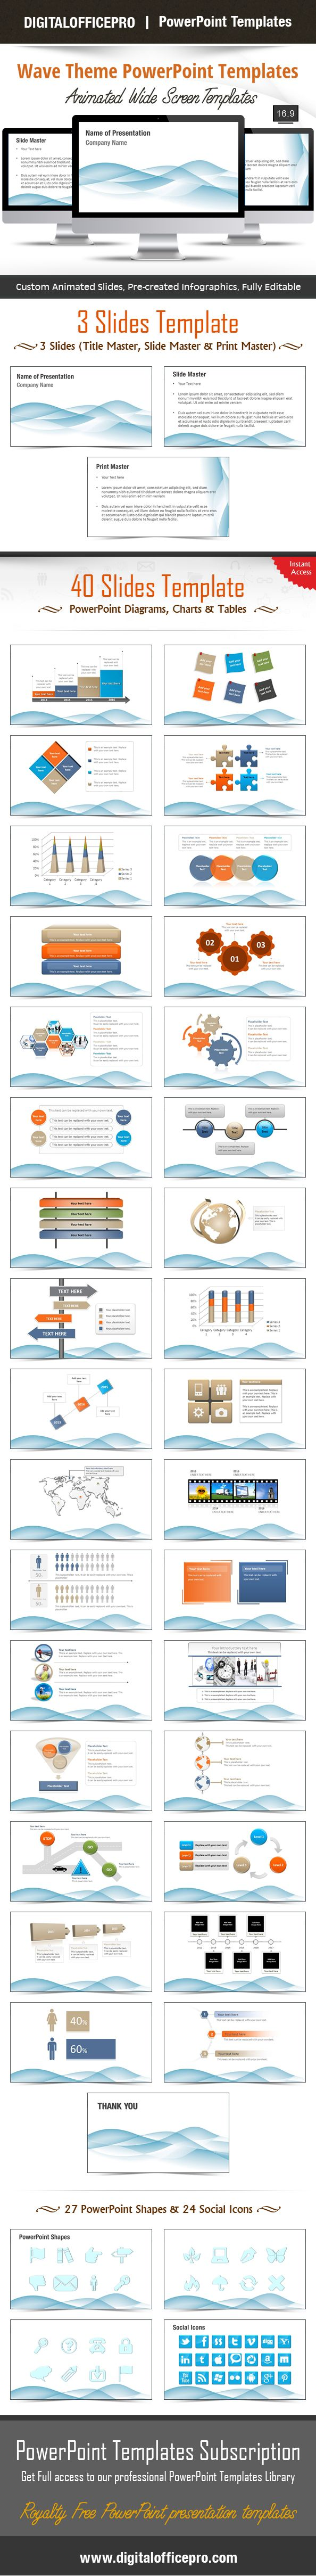 Oltre 20 migliori idee su download theme powerpoint su pinterest impress and engage your audience with wave theme powerpoint template and wave theme powerpoint backgrounds from toneelgroepblik Image collections